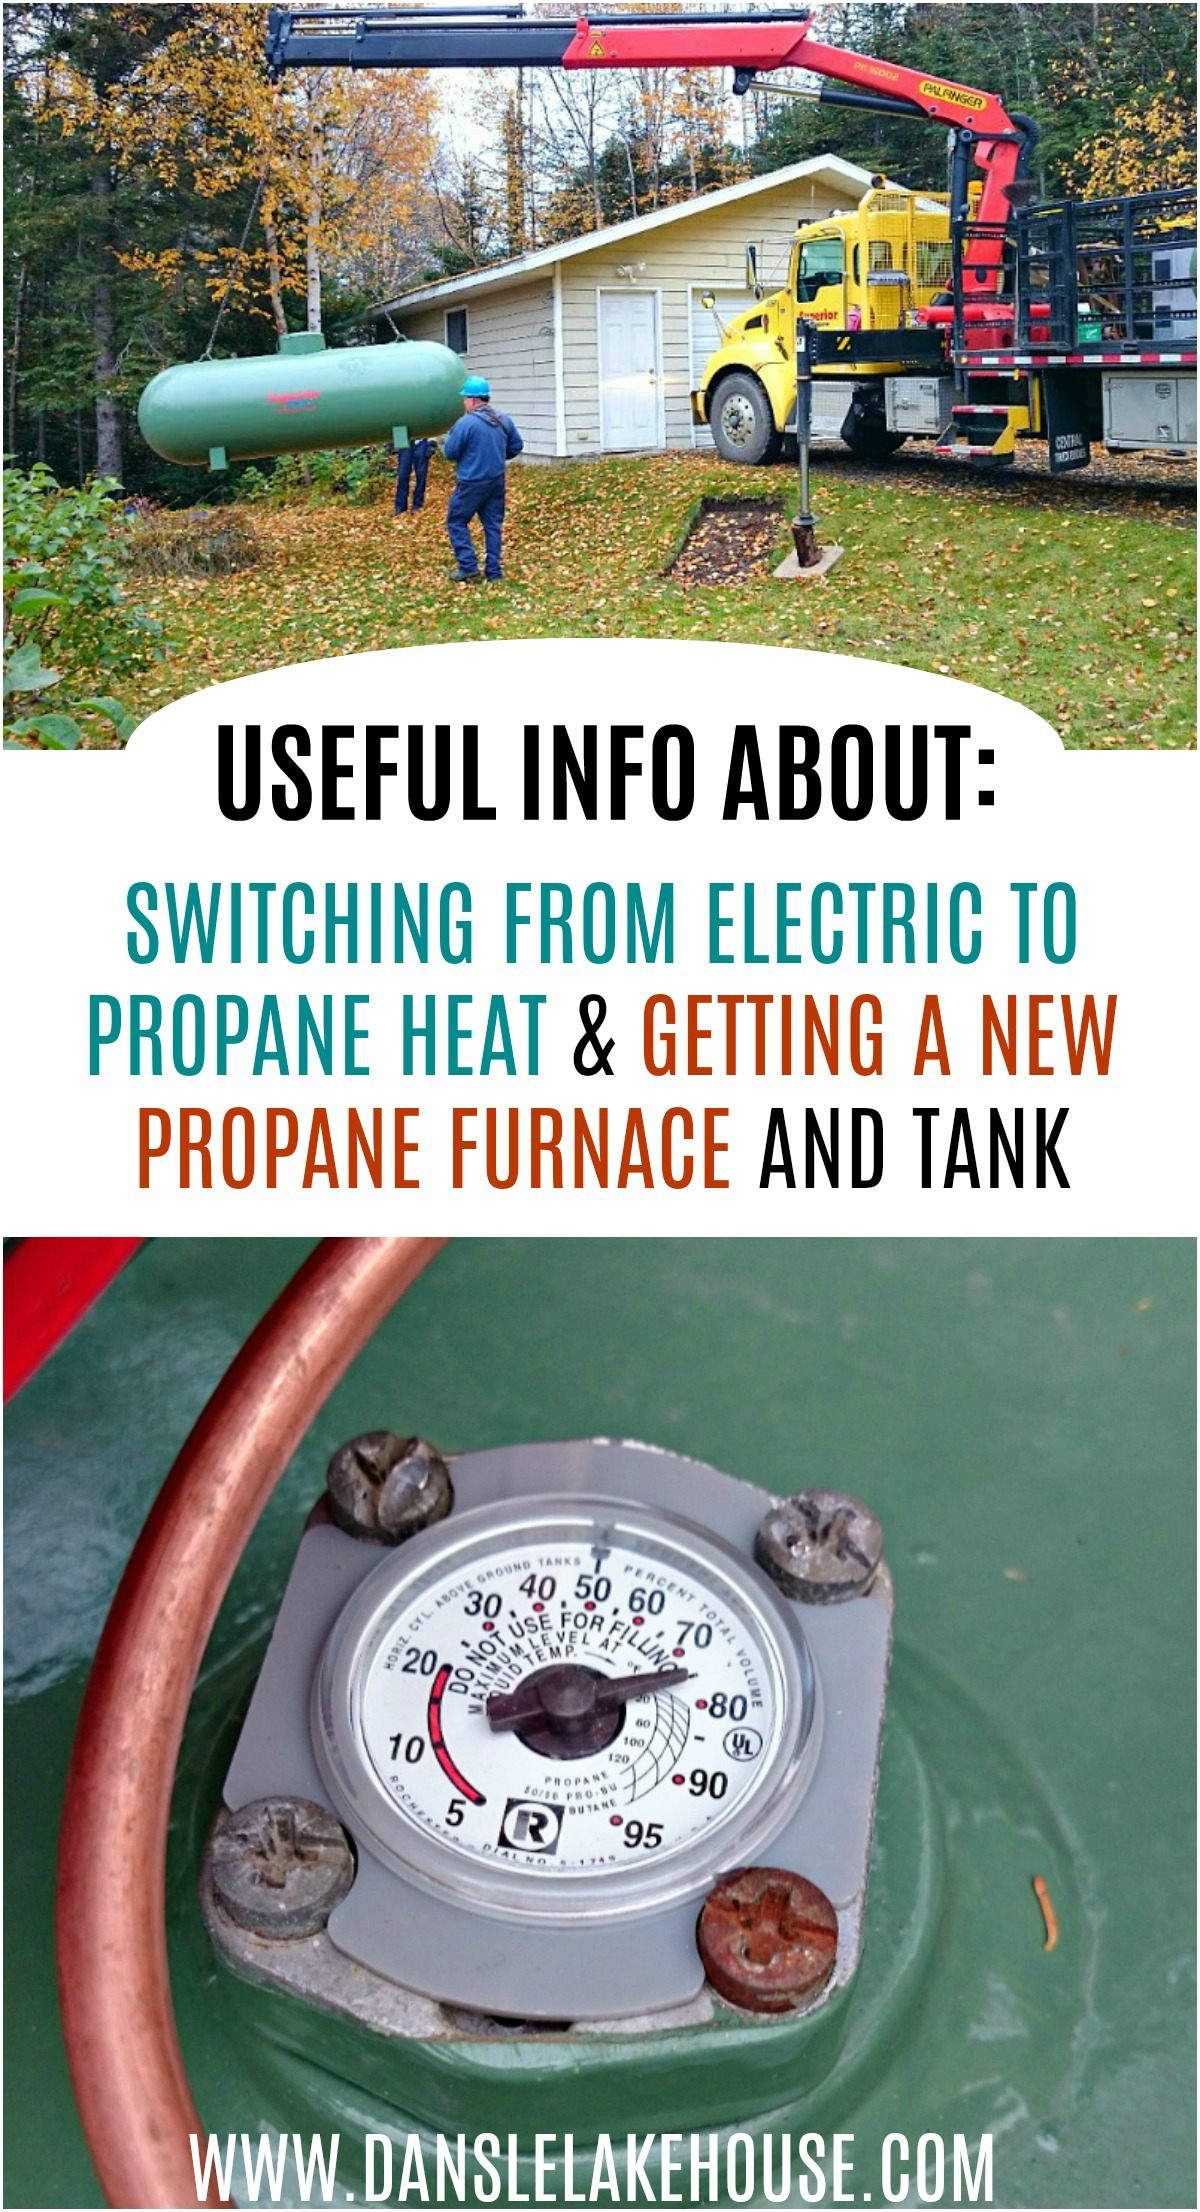 Useful Info: Switching from Electric Heat to Propane Heat, Getting a New Propane Furnace and Tank - and What to Expect!